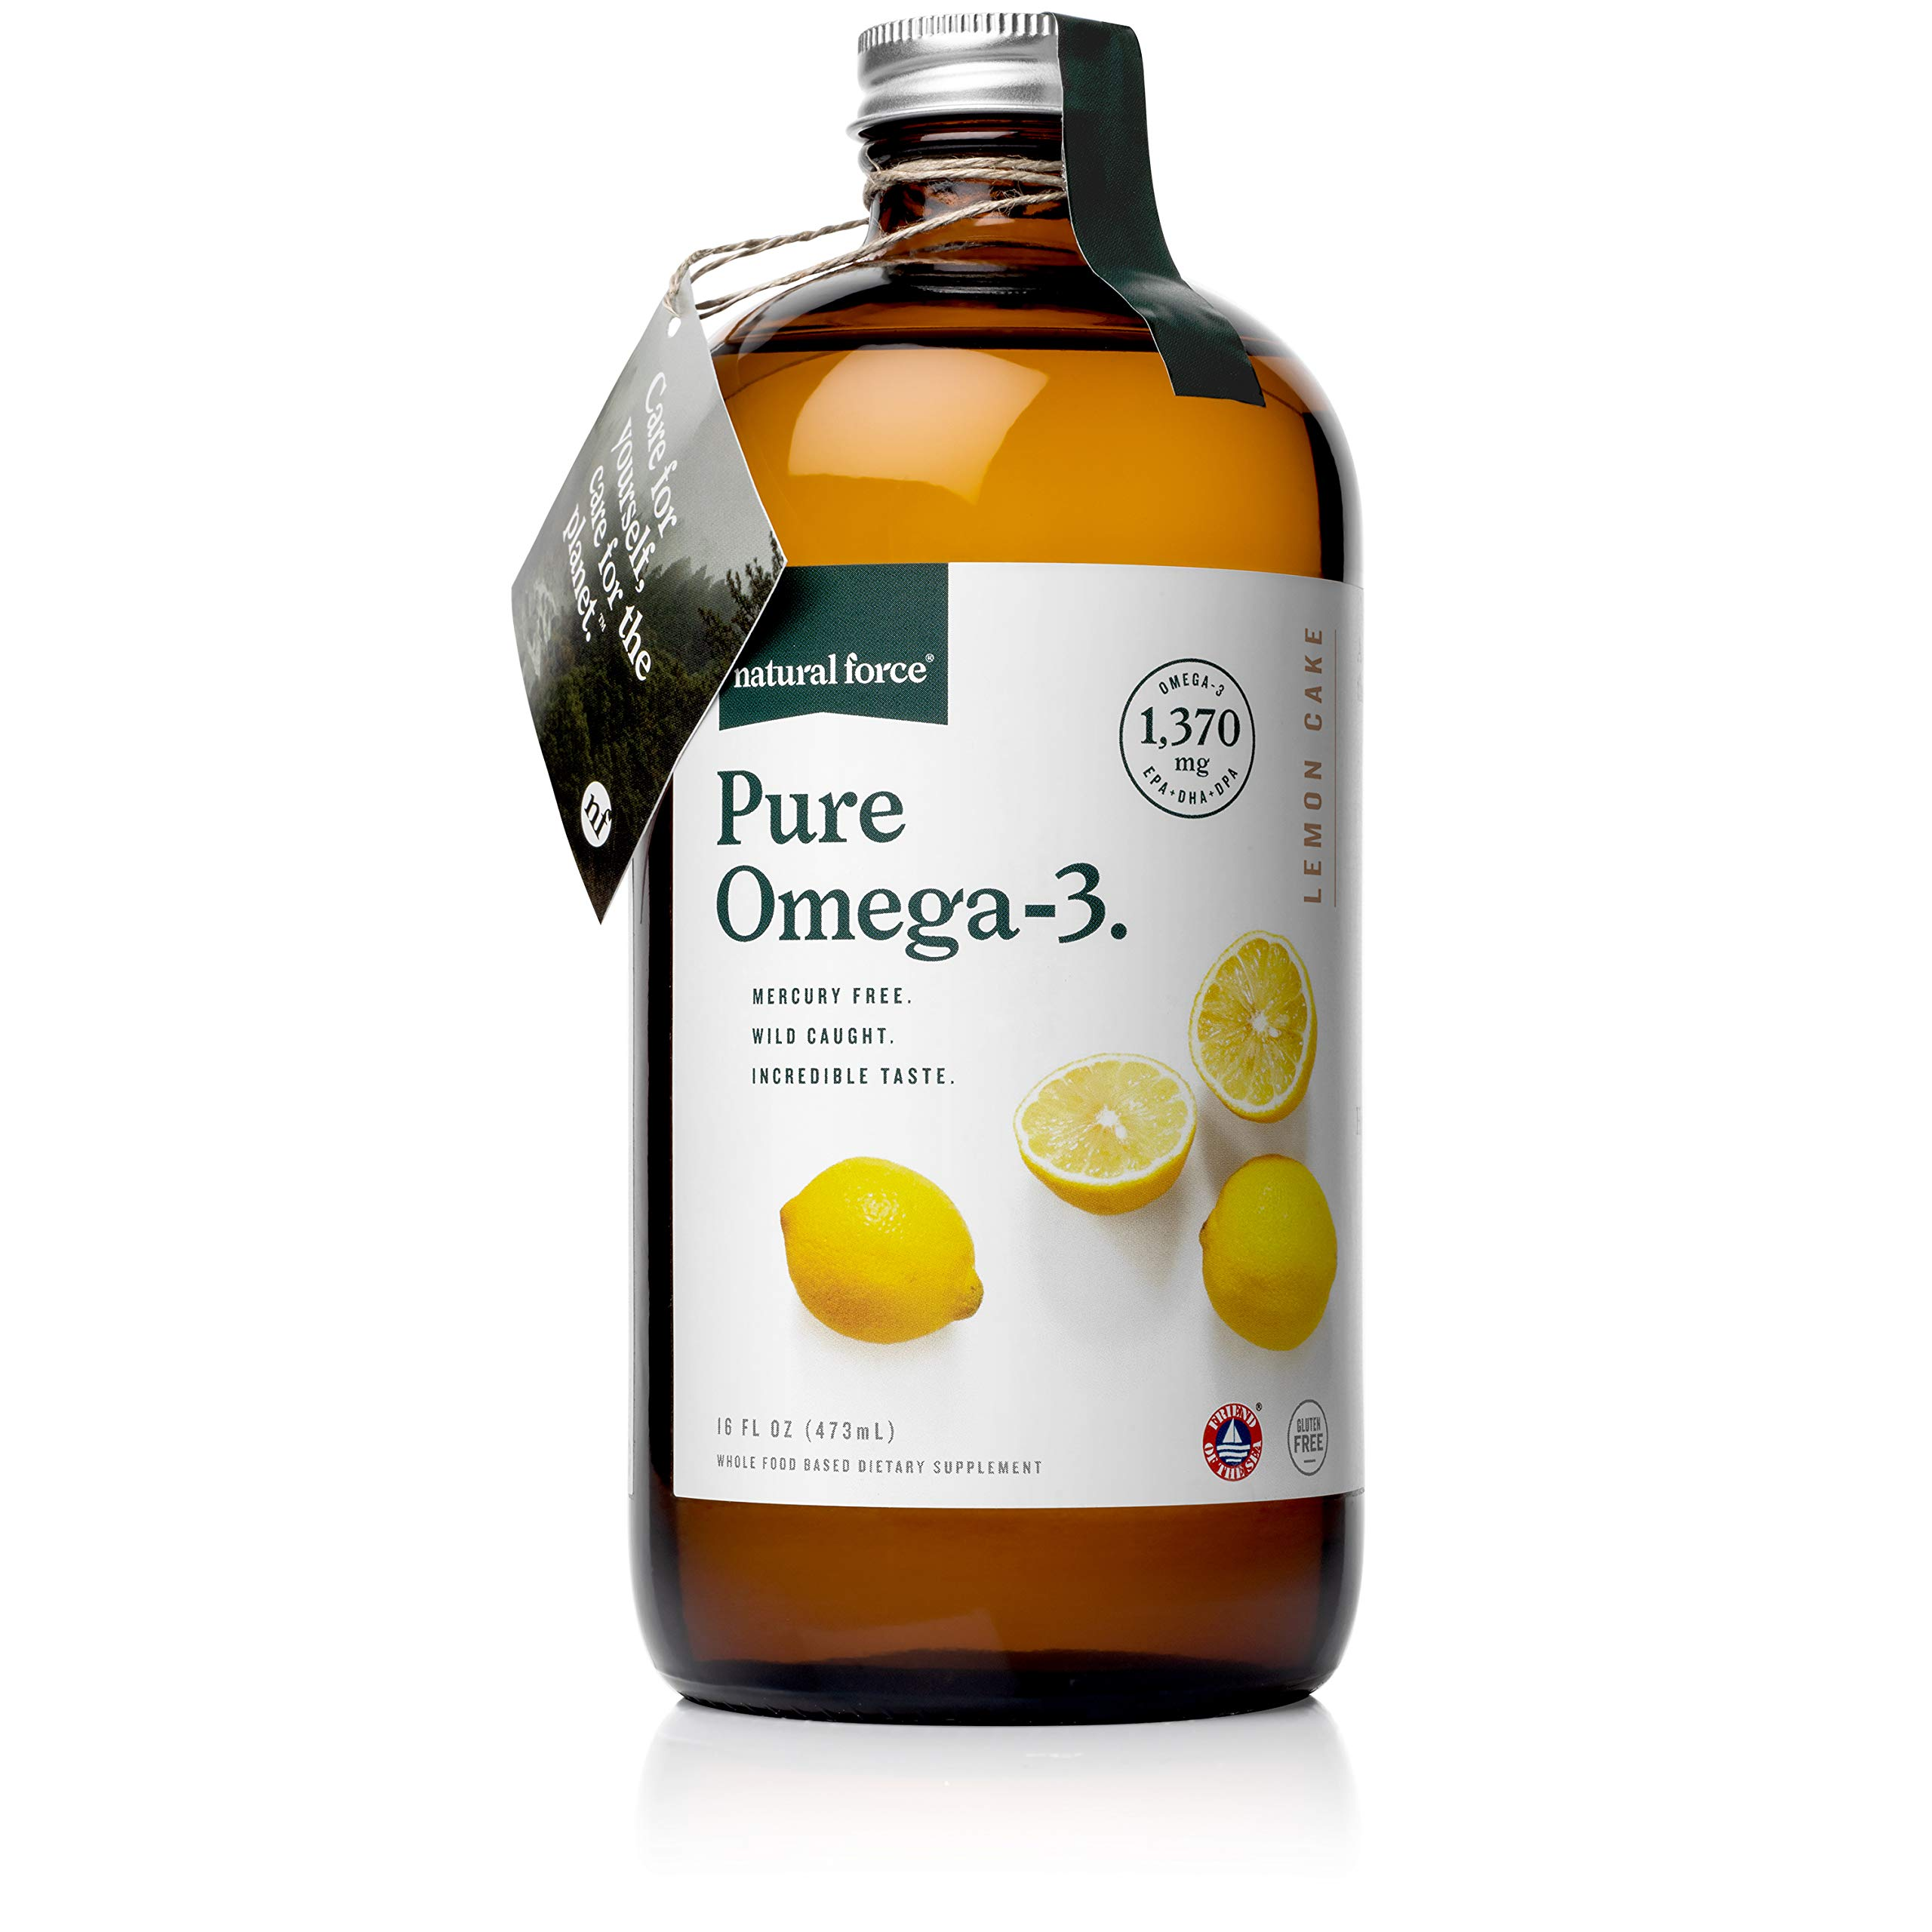 Natural Force Pure Omega 3 - Liquid Fish Oil for Adults and Kids – Lemon Cake Flavor - Mercury Free, Wild Caught, Lab Tested - 1,370 mg Triglyceride EPA, DHA, & DPA - 16 Oz Glass Bottle